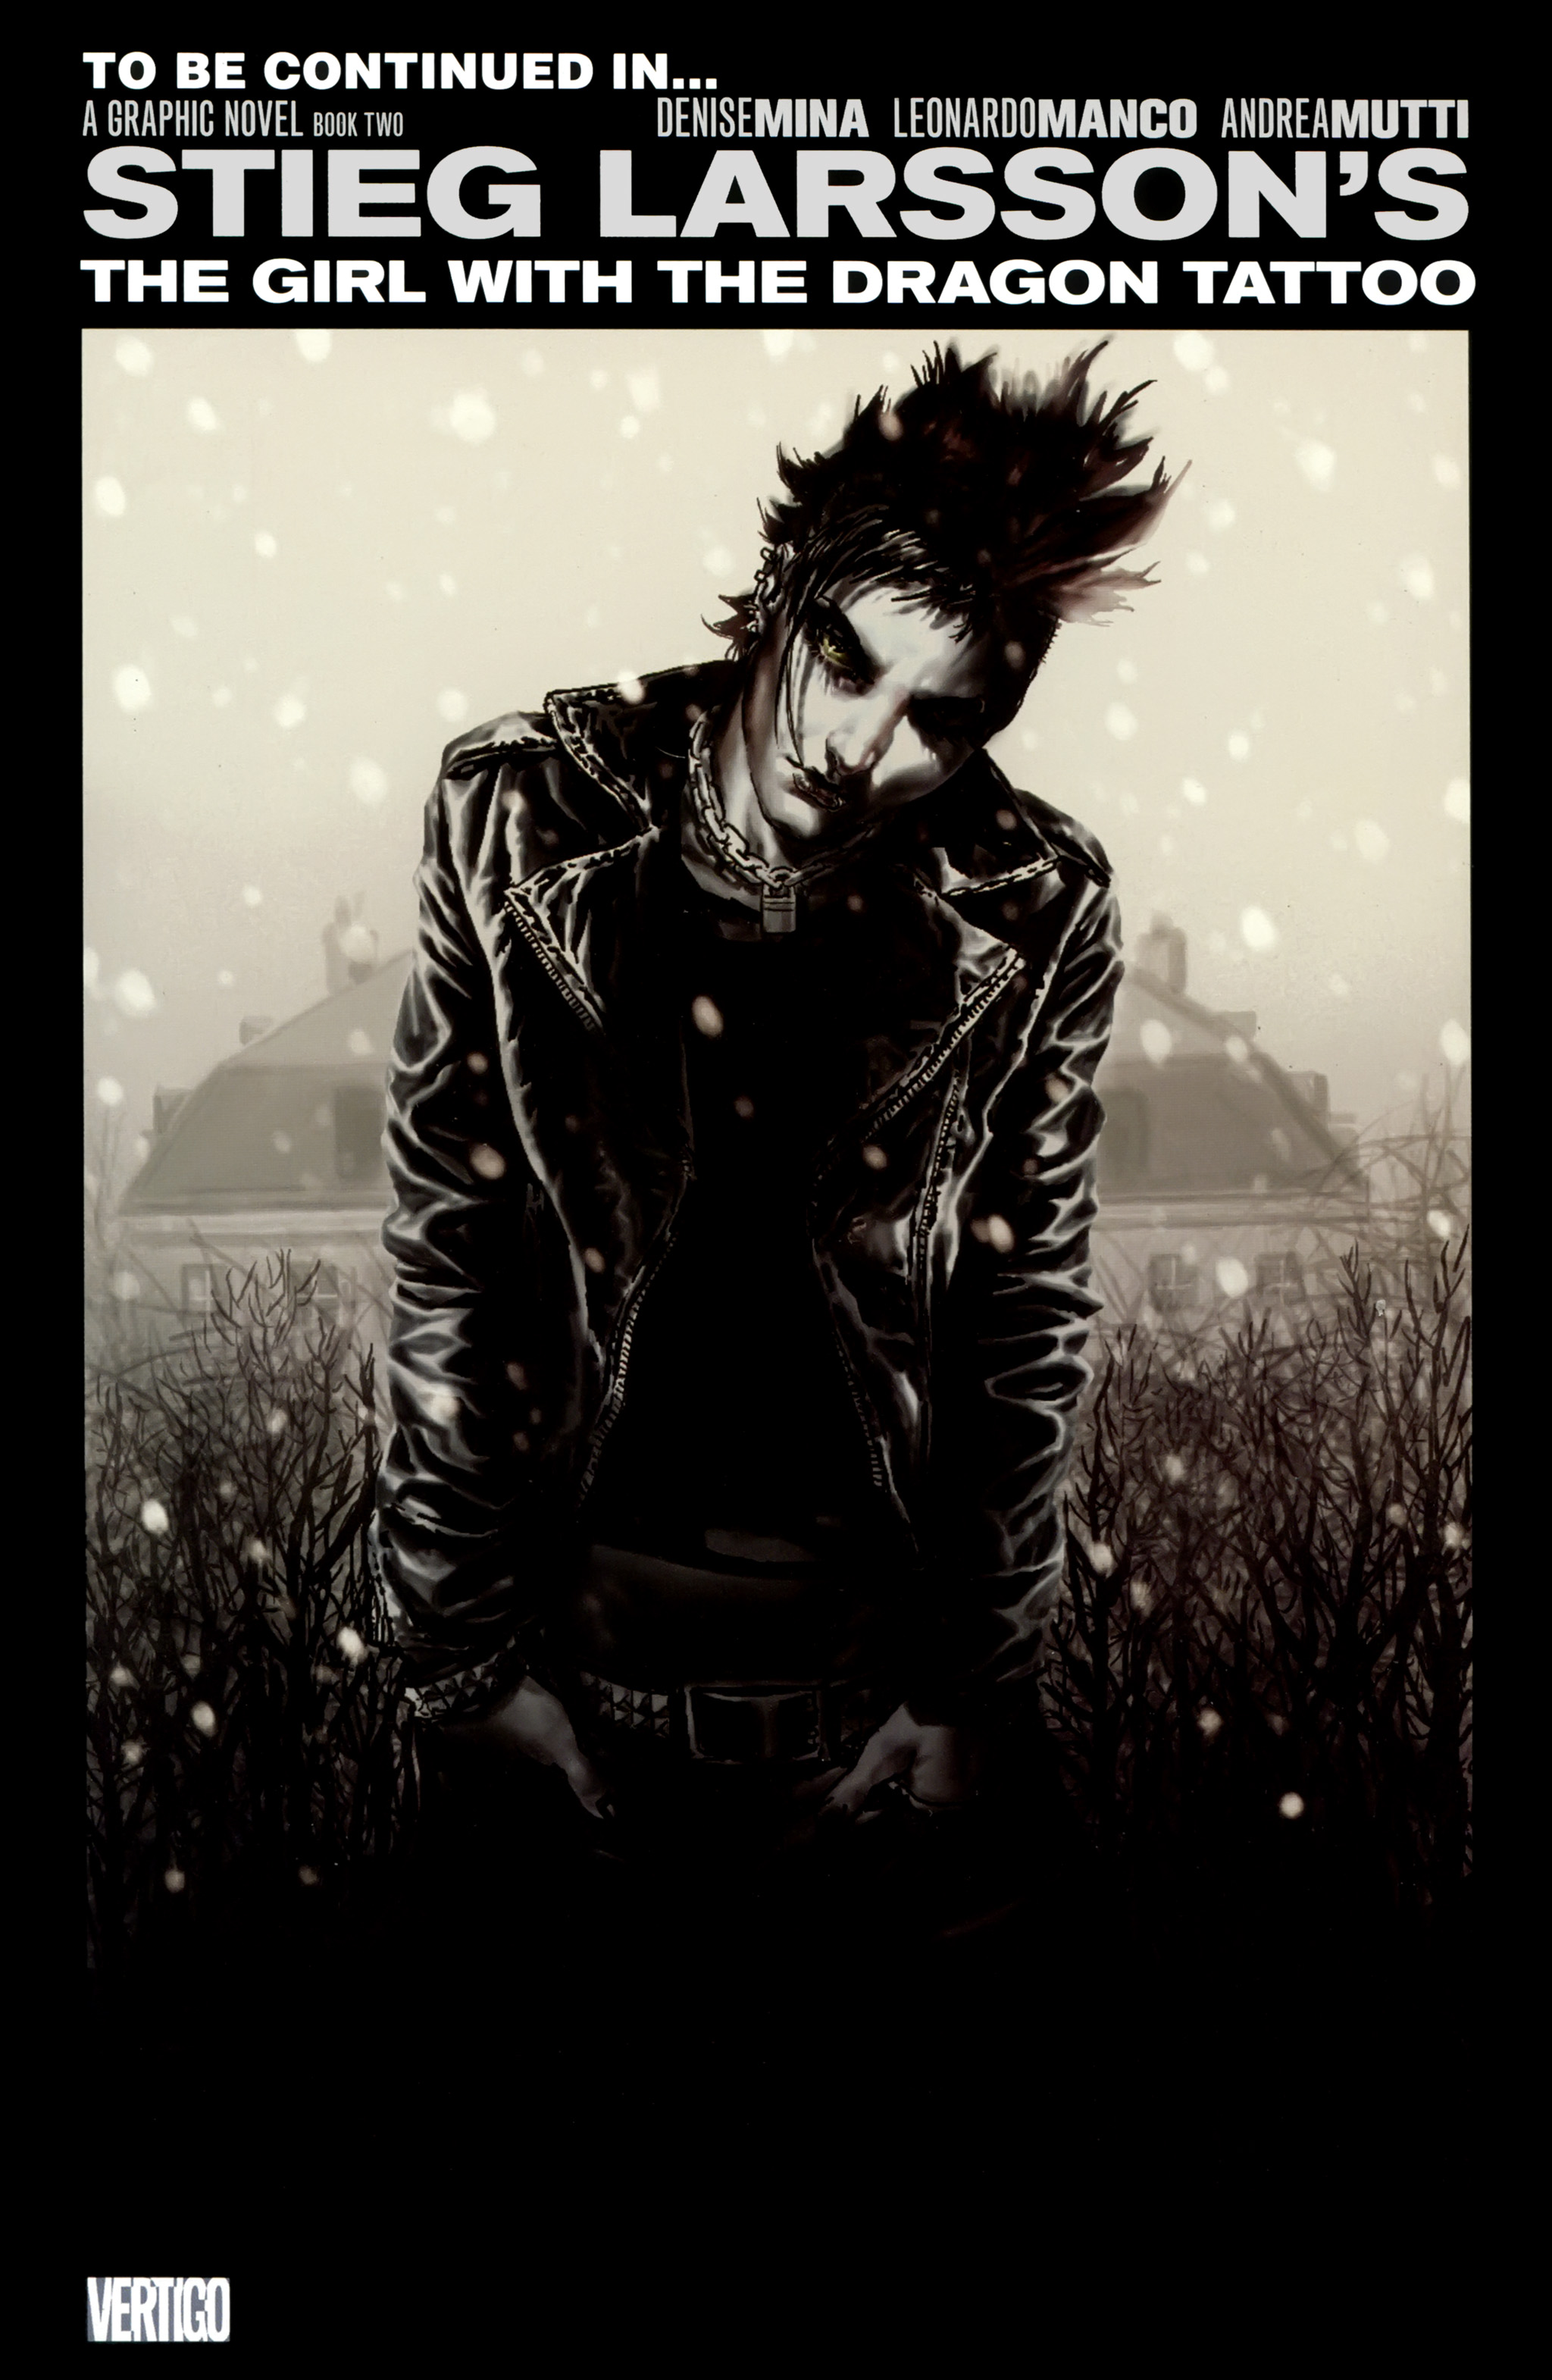 Read online The Girl With the Dragon Tattoo comic -  Issue # TPB 1 - 152